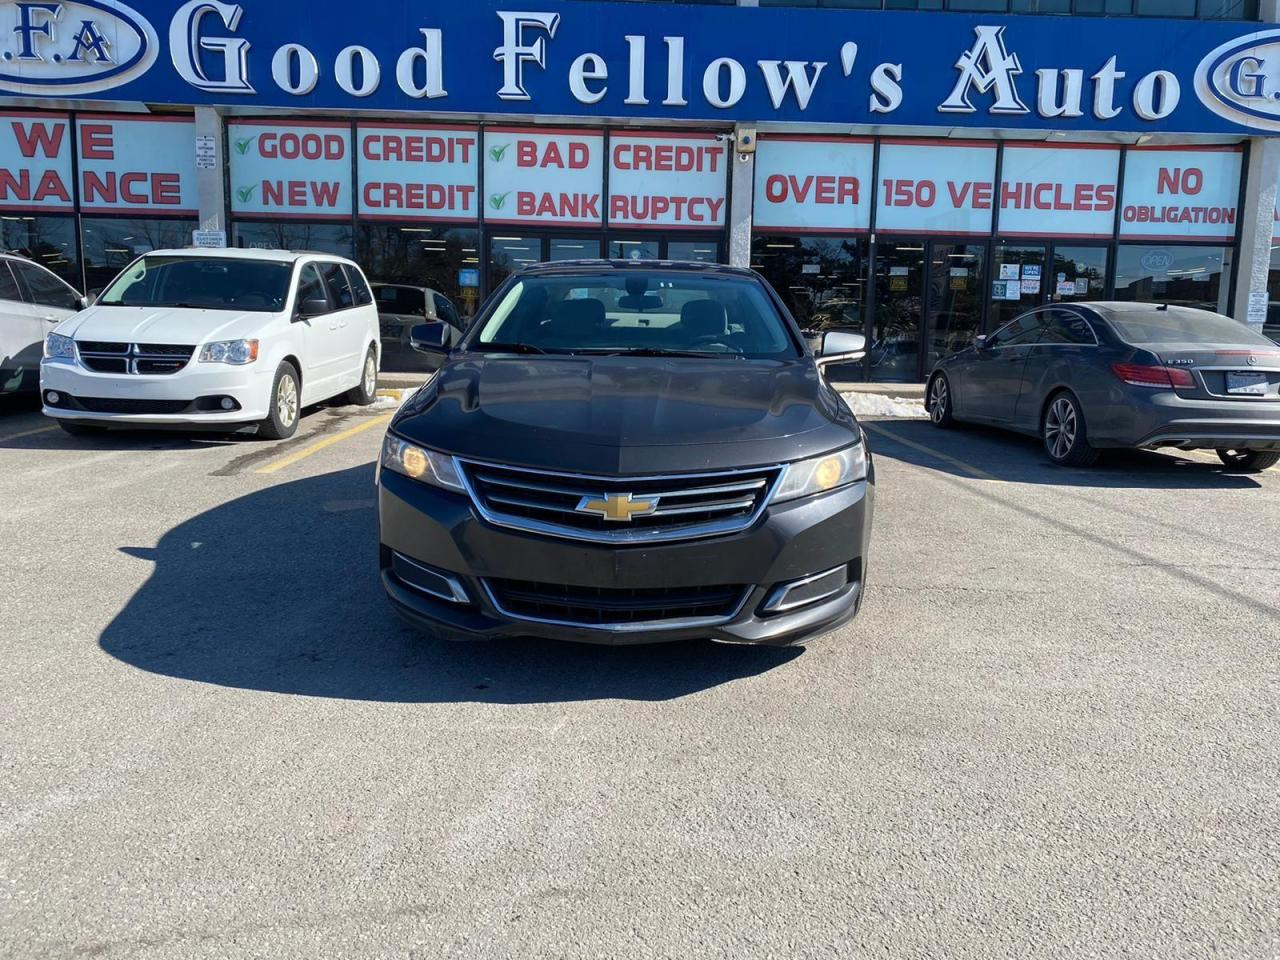 used 2014 Chevrolet Impala car, priced at $6,400